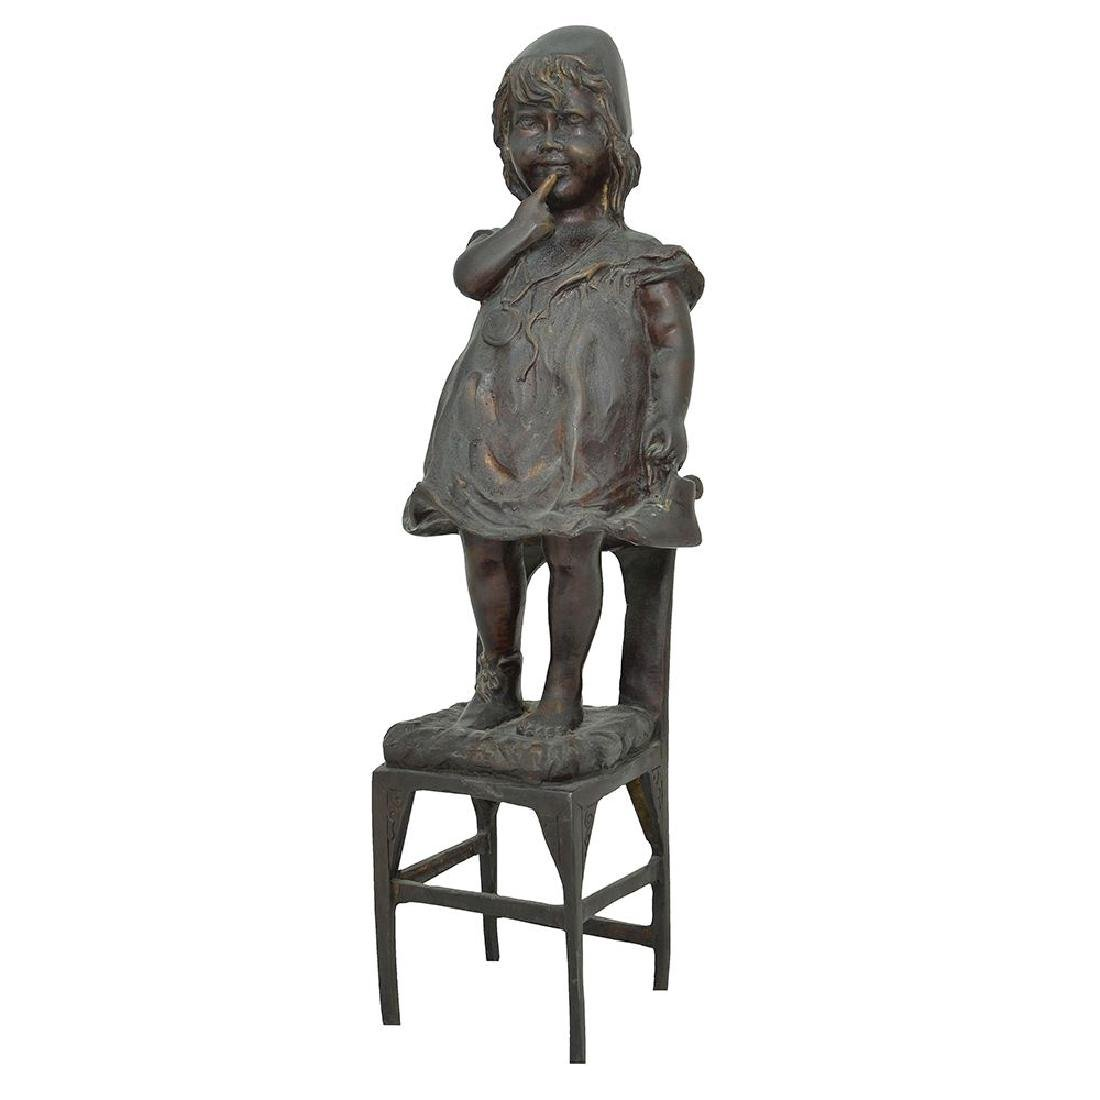 A BRONZE FIGURE OF A GIRL ON A CHAIR WITH HER SHOE IN